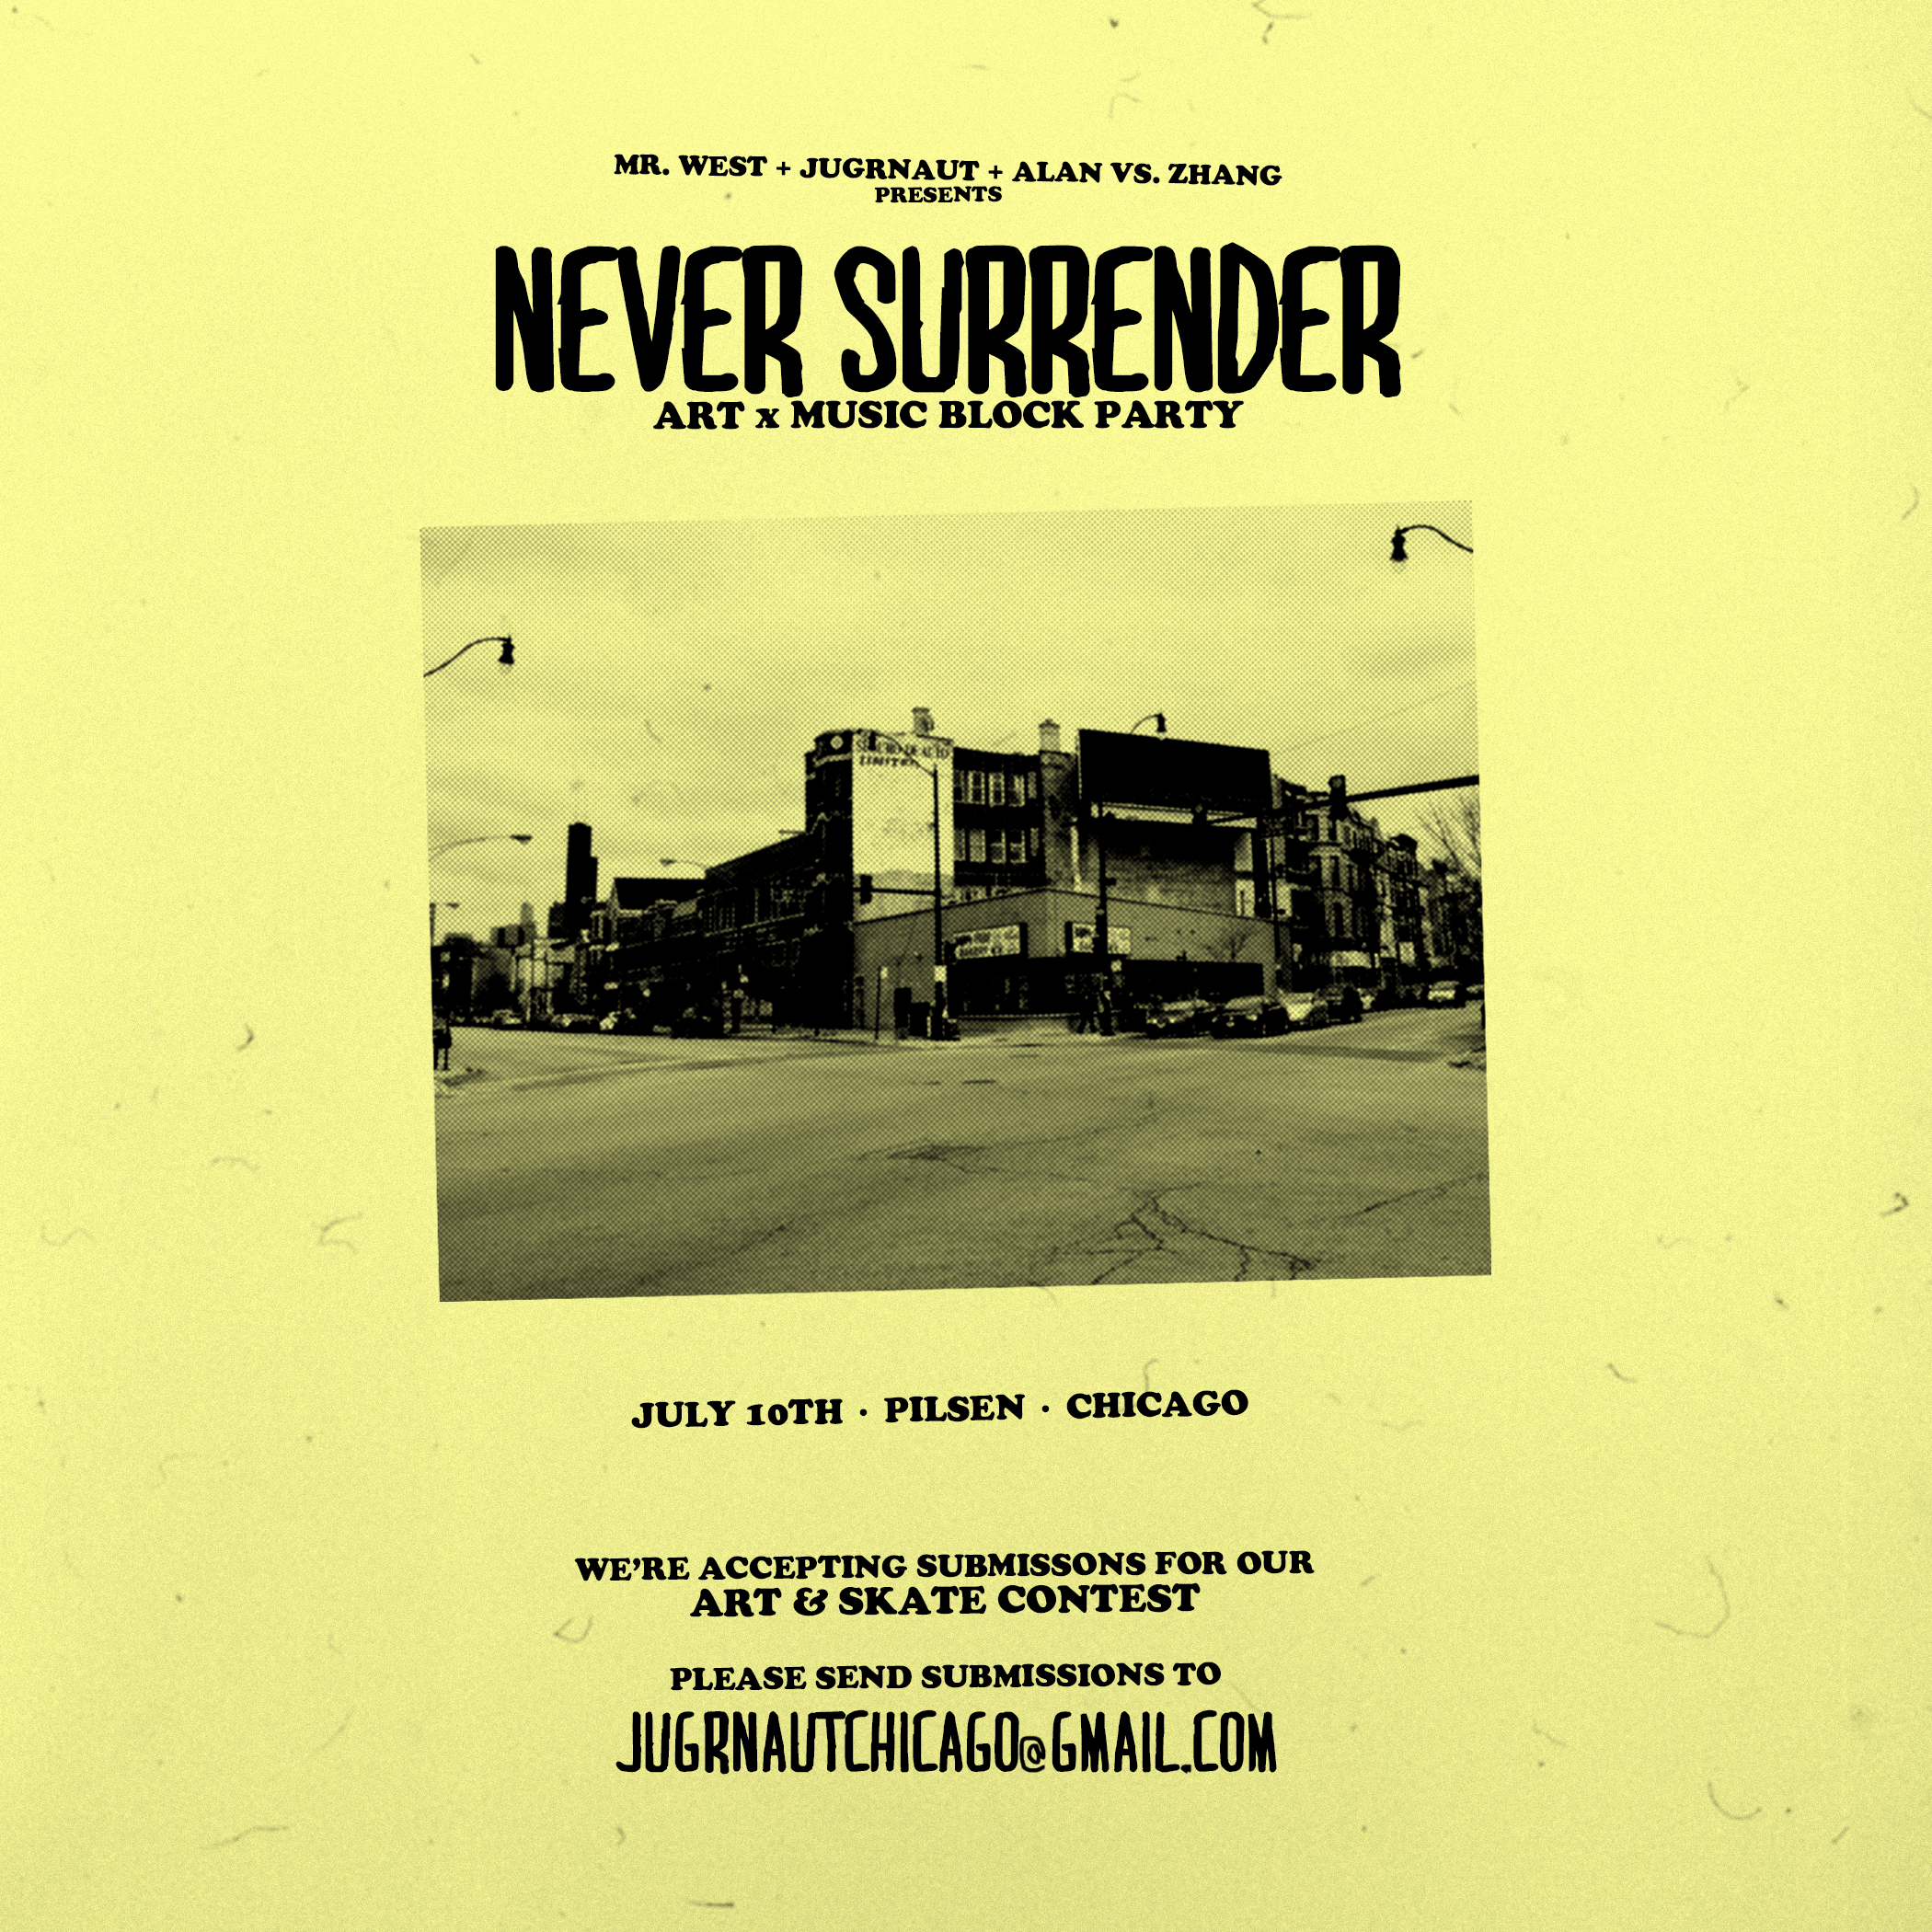 neversurrender_submissions